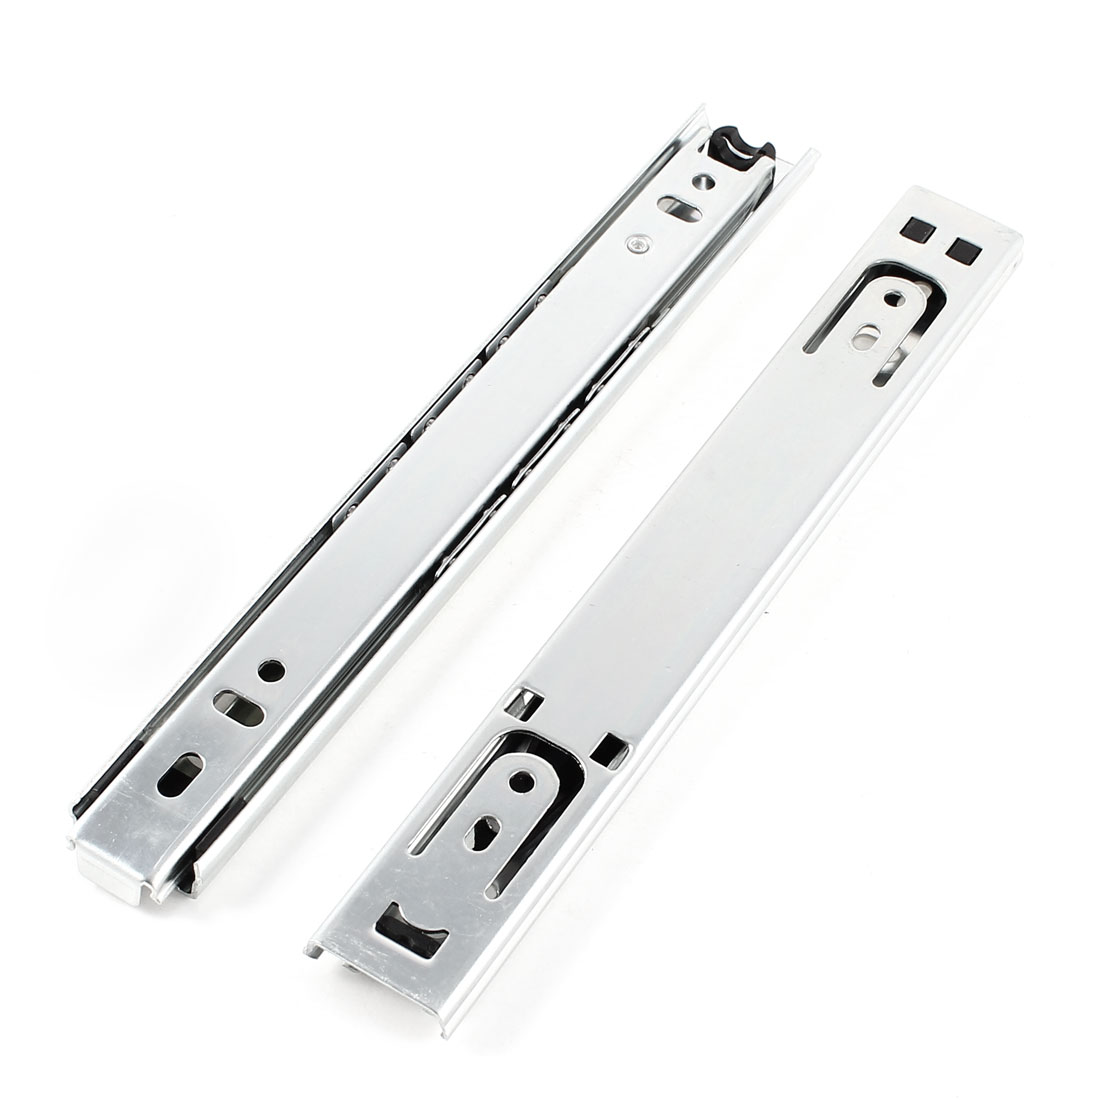 "2 Pcs 8"" Long 2 Sections Ball Bearing Telescopic Cabinet Drawer Slide"